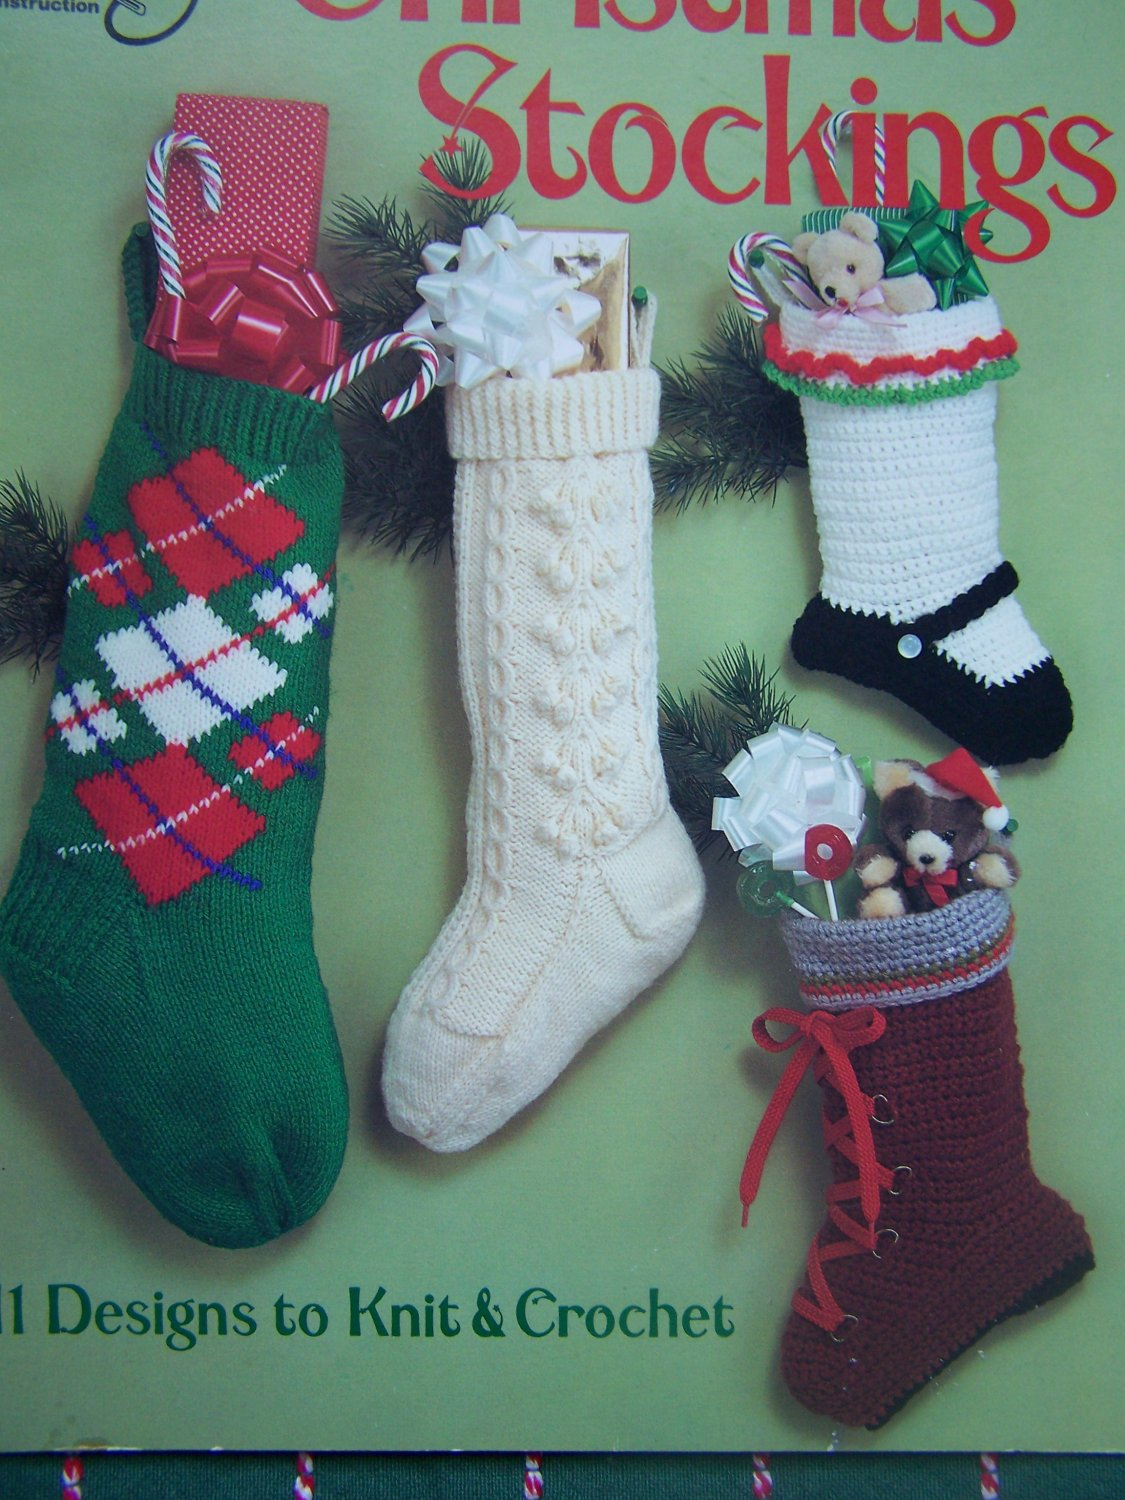 Vintage Christmas Stocking Knitting Pattern : 11 Vintage Christmas Stockings Patterns 5 Knitting & 6 Crochet